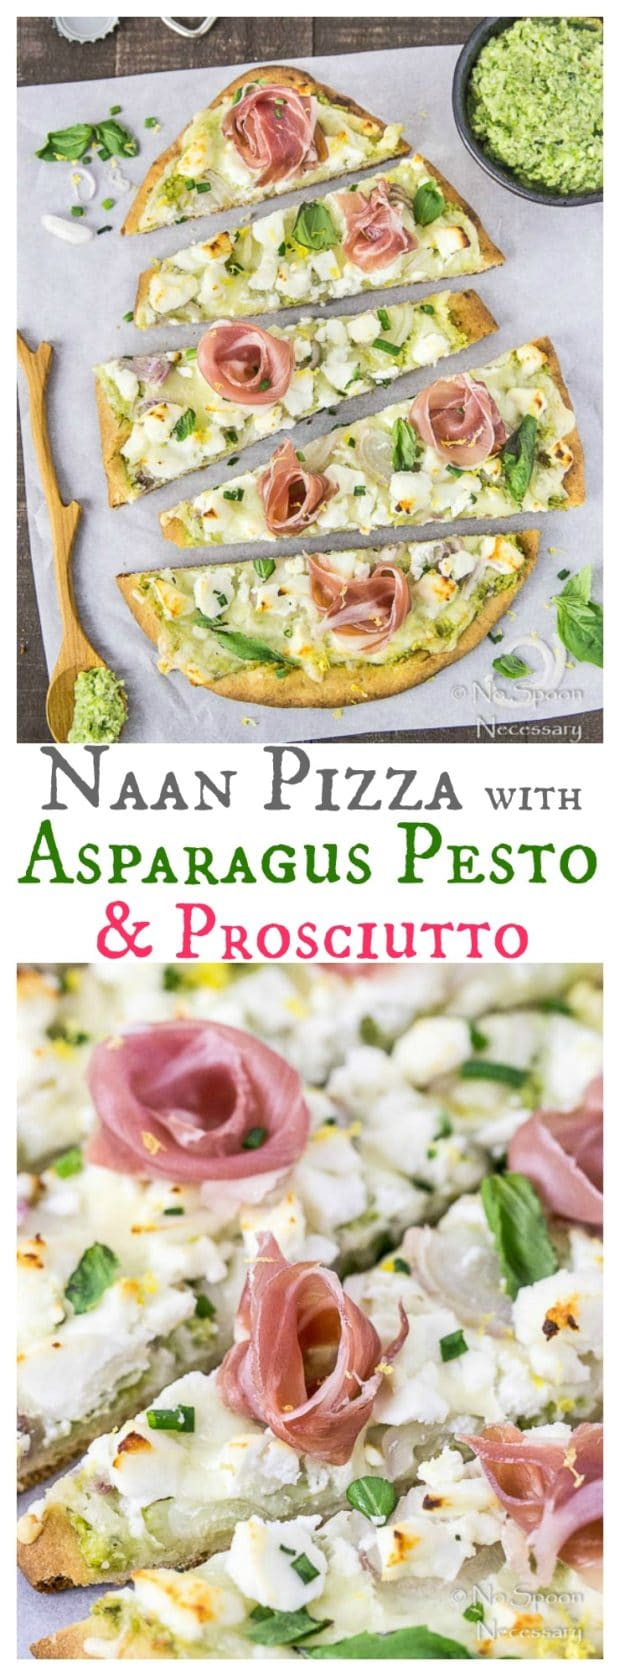 Naan Pizza with Asparagus Pesto, Prosciutto, Goat Cheese & Fontina-long pin 2